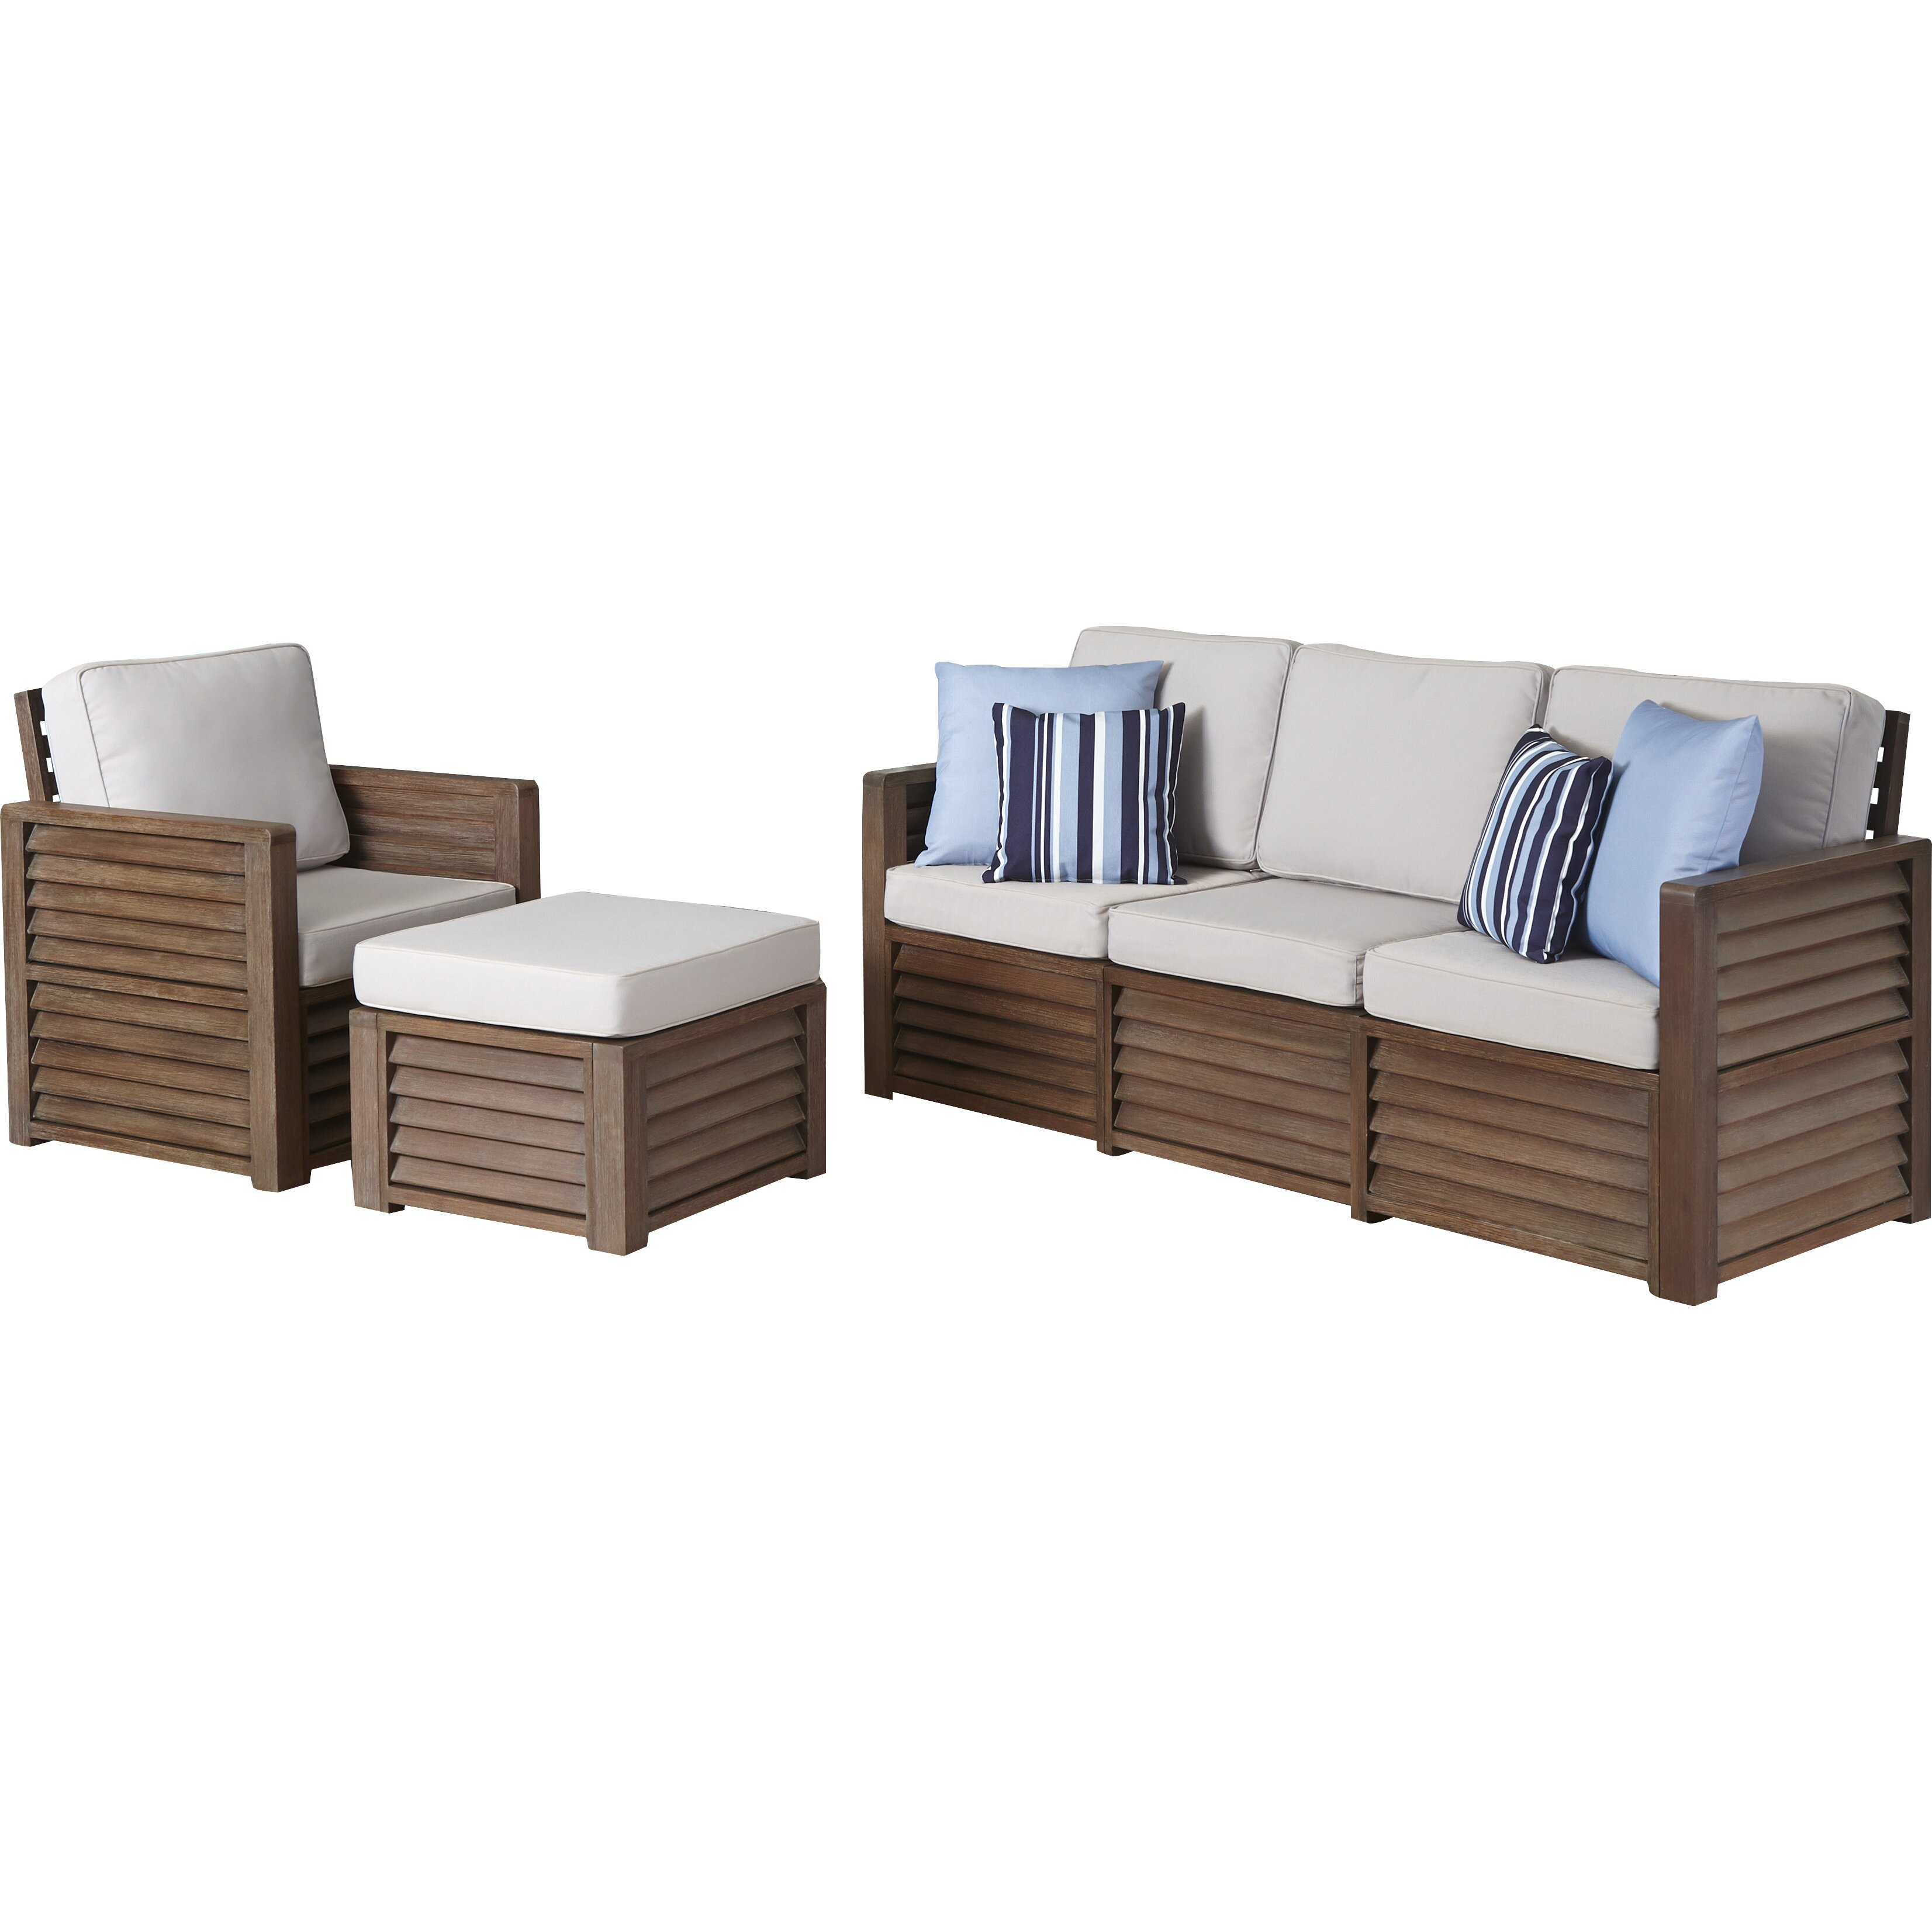 Home styles barnside 4 piece living room set wayfair for 4 piece living room set